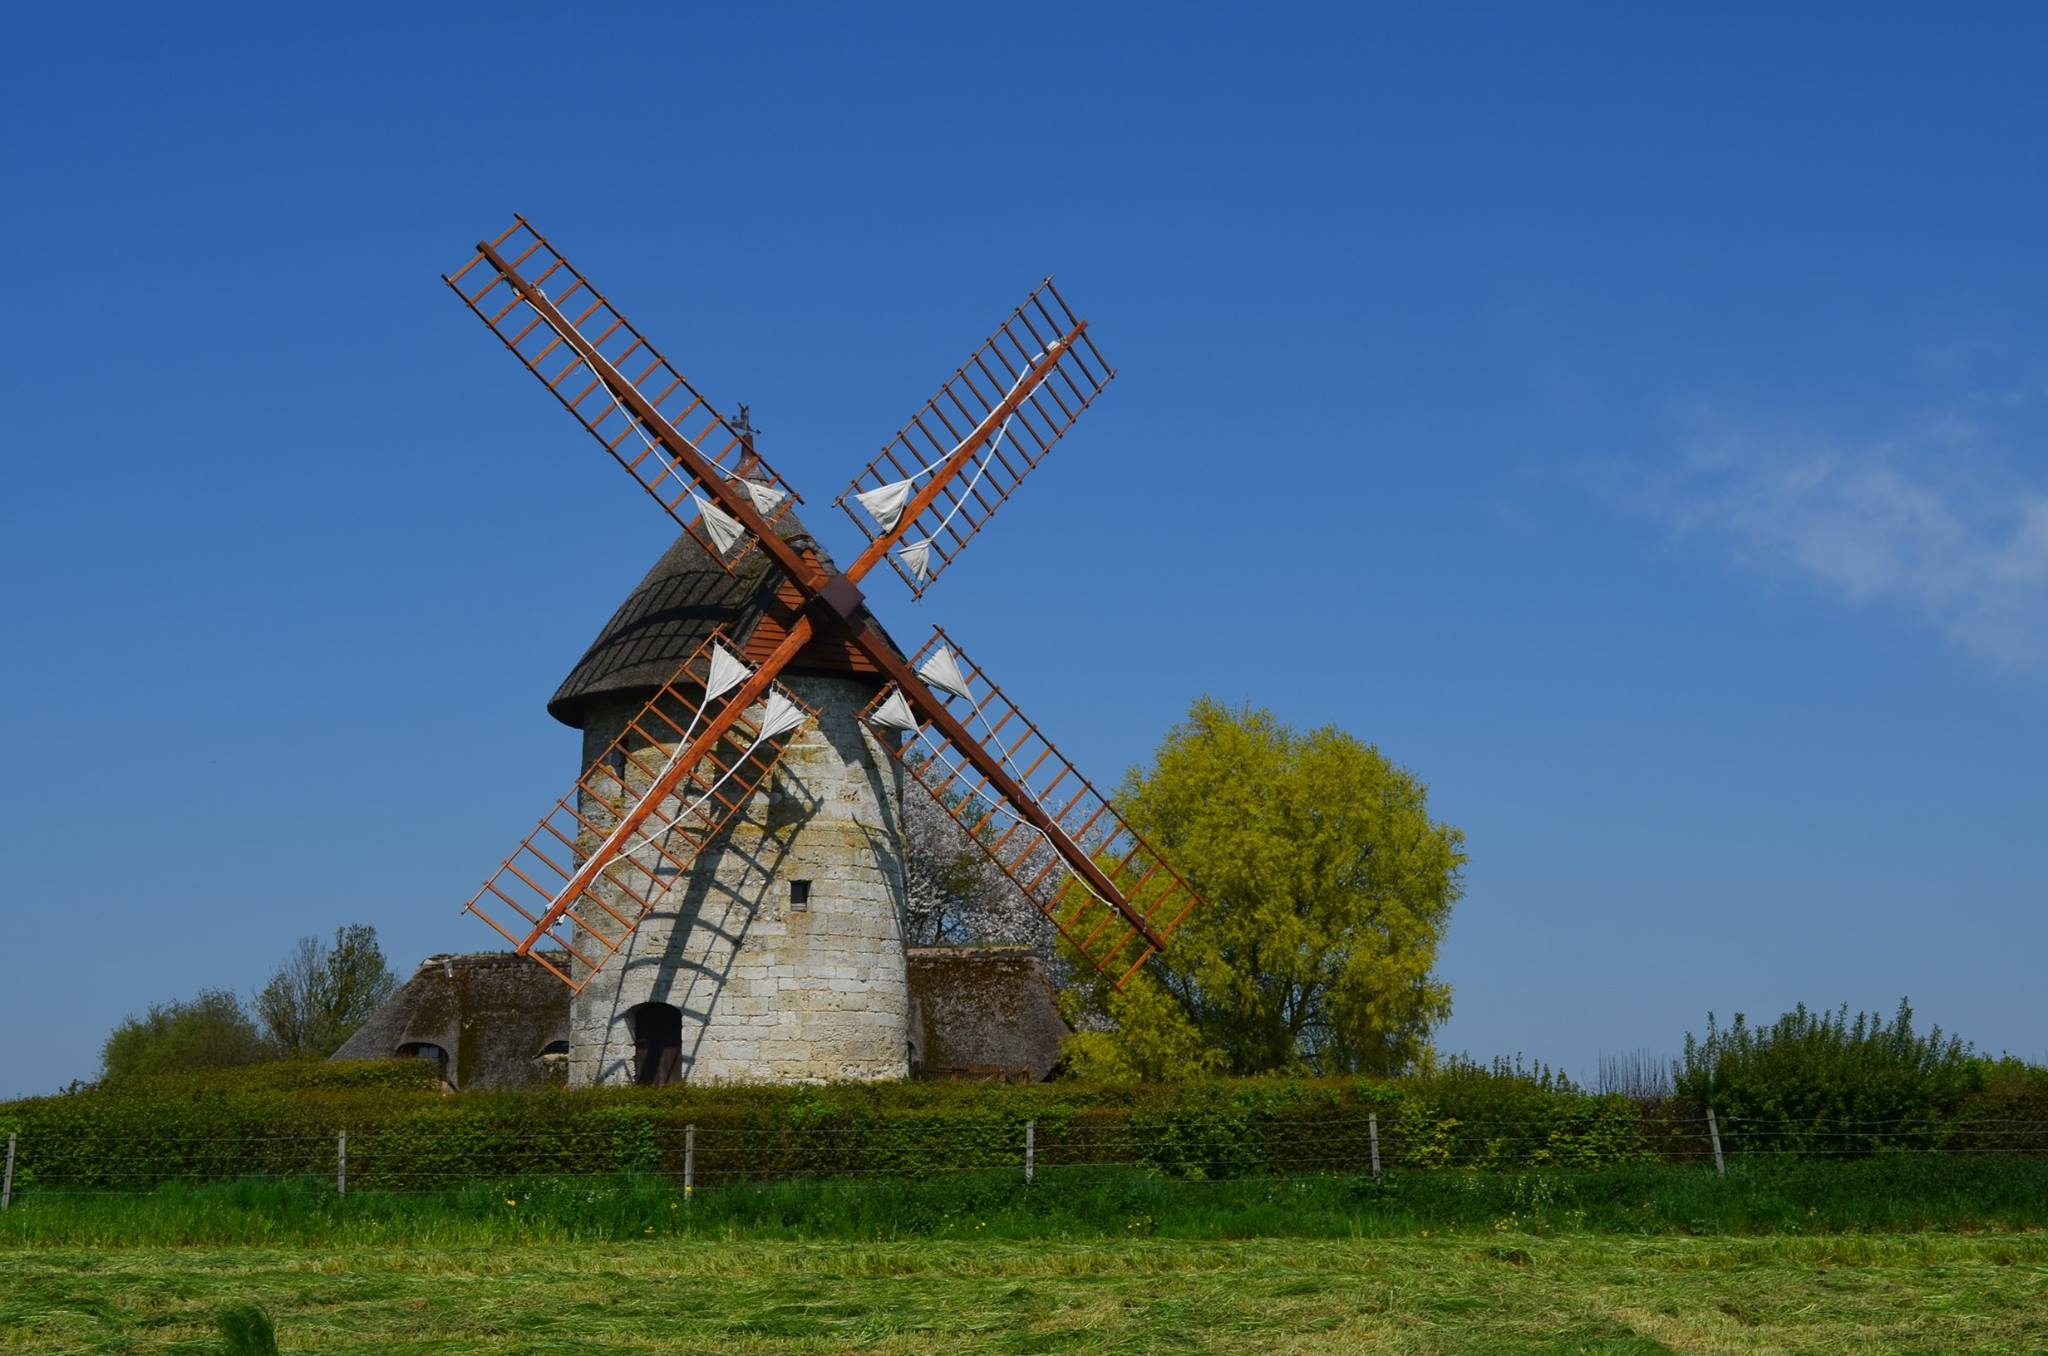 Moulin de pierre